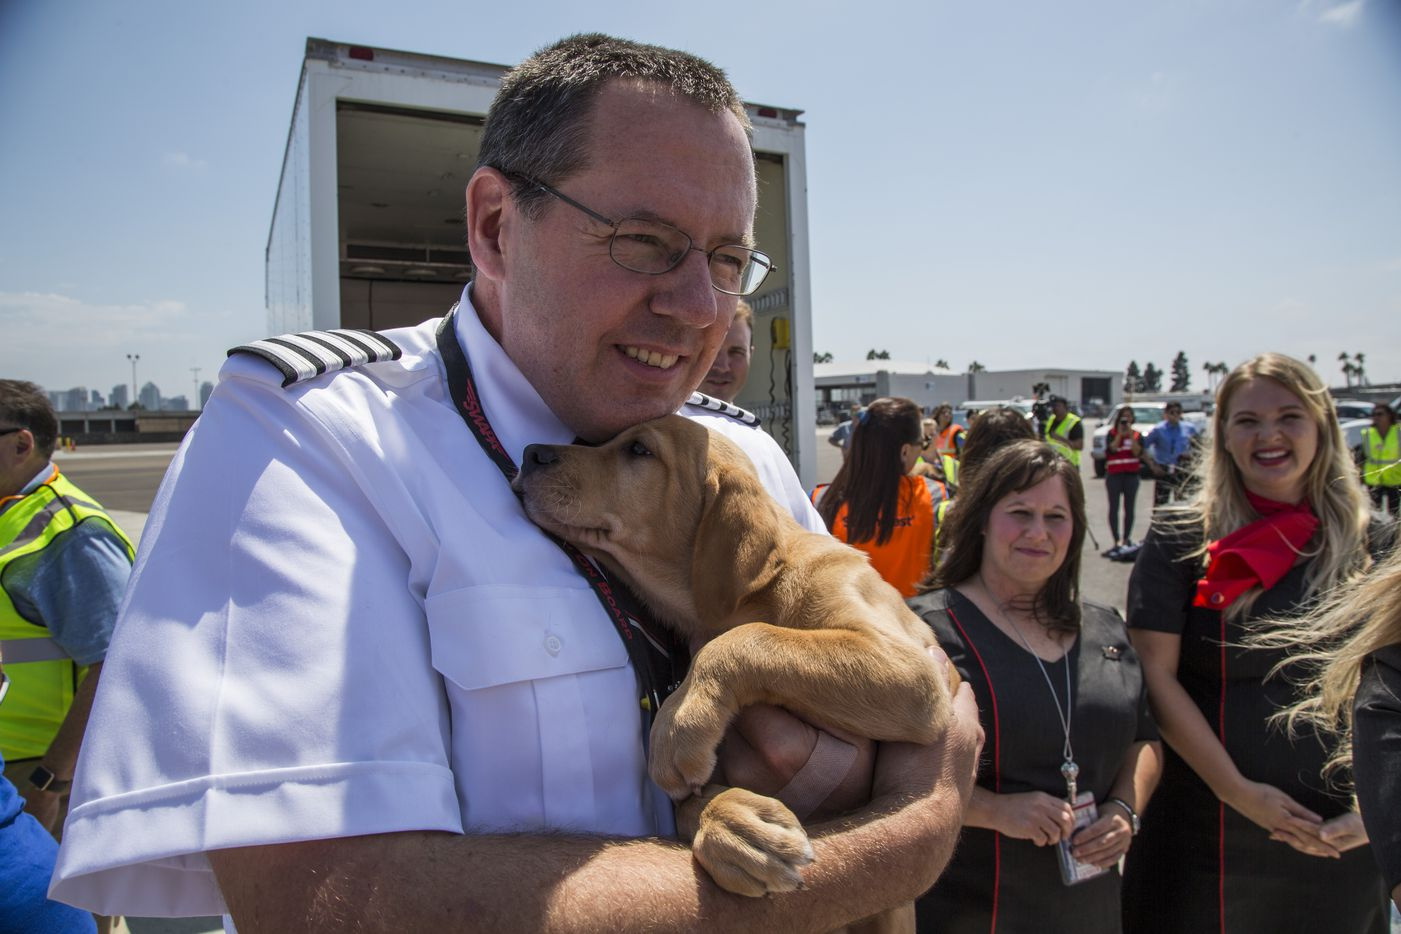 Southwest Airlines teamed up with the Helen Woodward Animal Center to transport 64 animals from local Houston shelters to San Diego, making room for pets displaced by Hurricane Harvey.